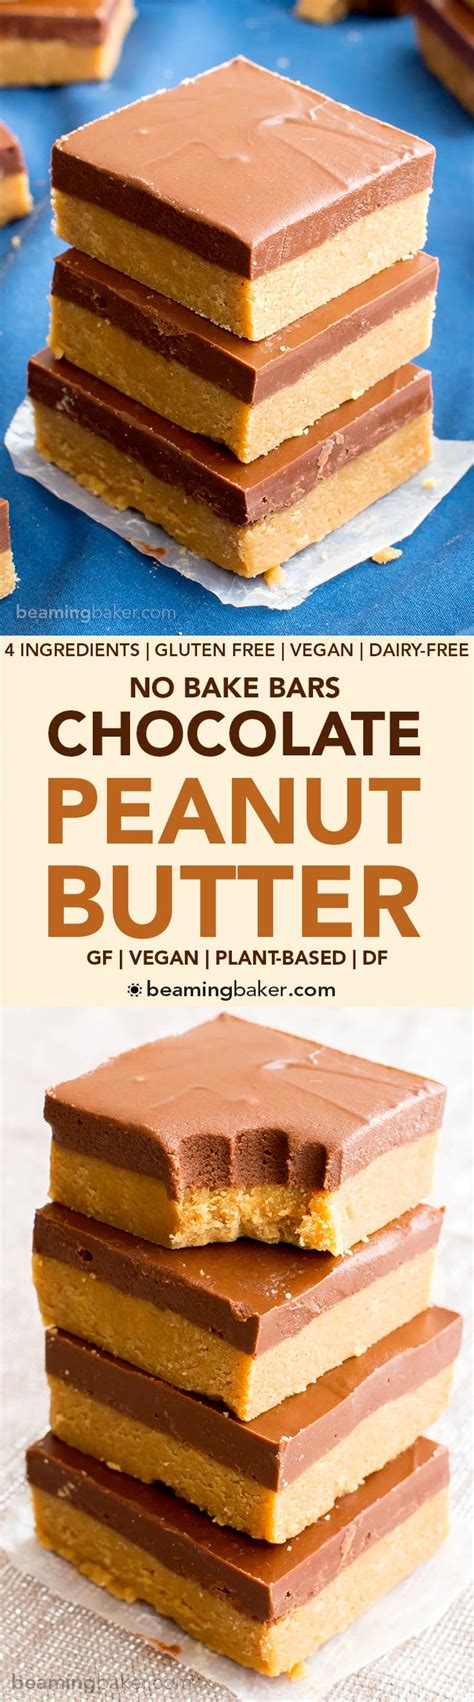 no bake peanut butter bars with chocolate on top healthy peanut butter bars no bake